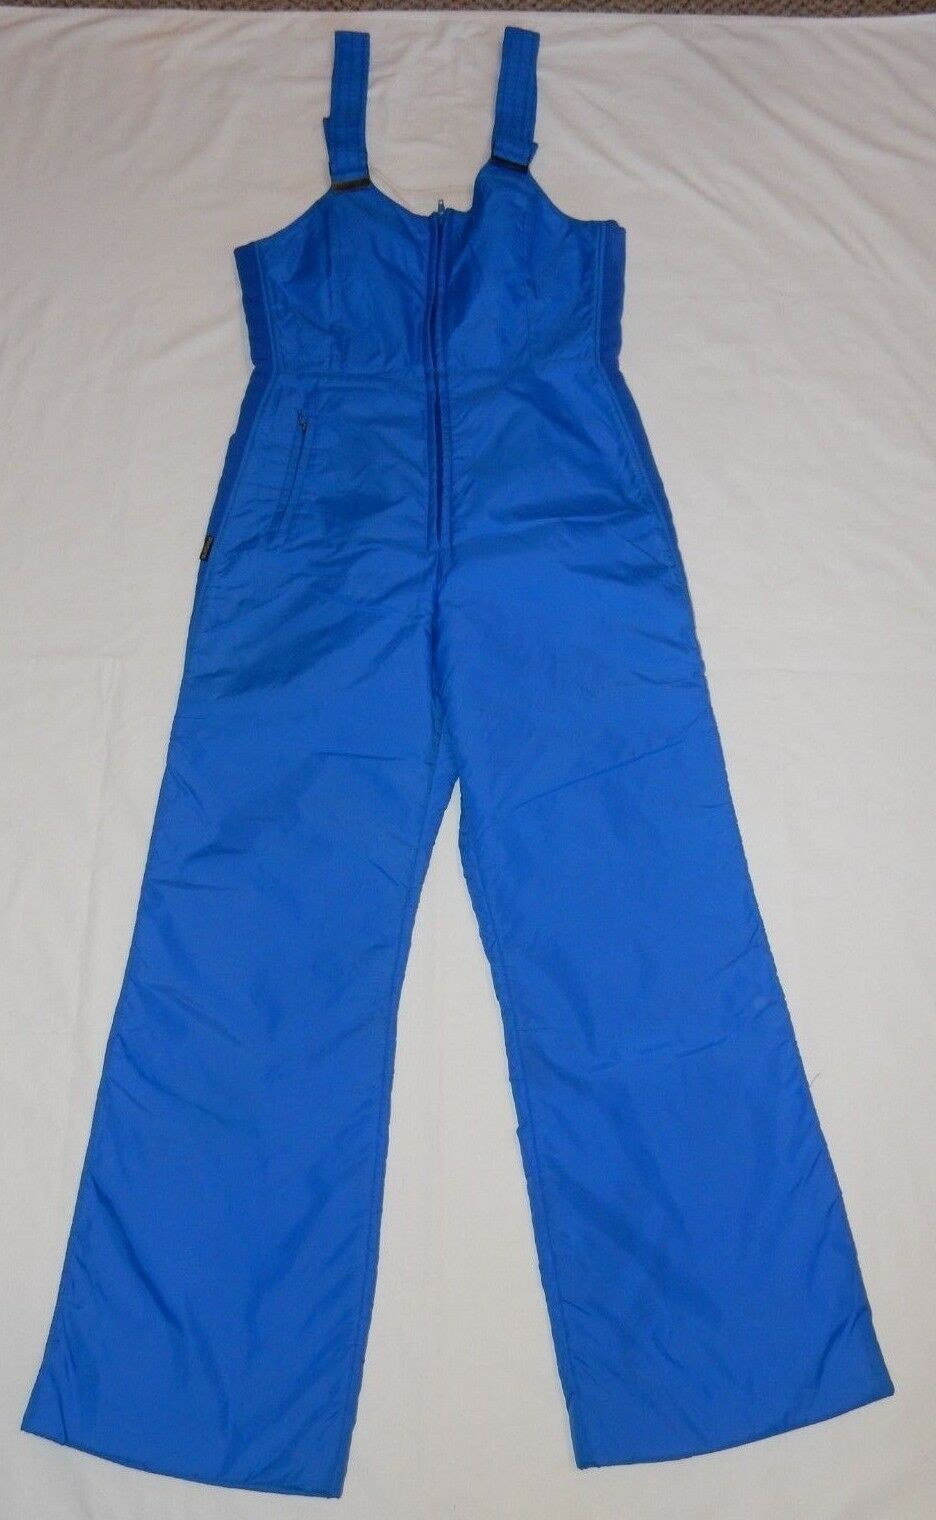 VINTAGE 70's Sportscaster Womens Ski Snow Suit Bibs Retro bluee Large Medium EUC